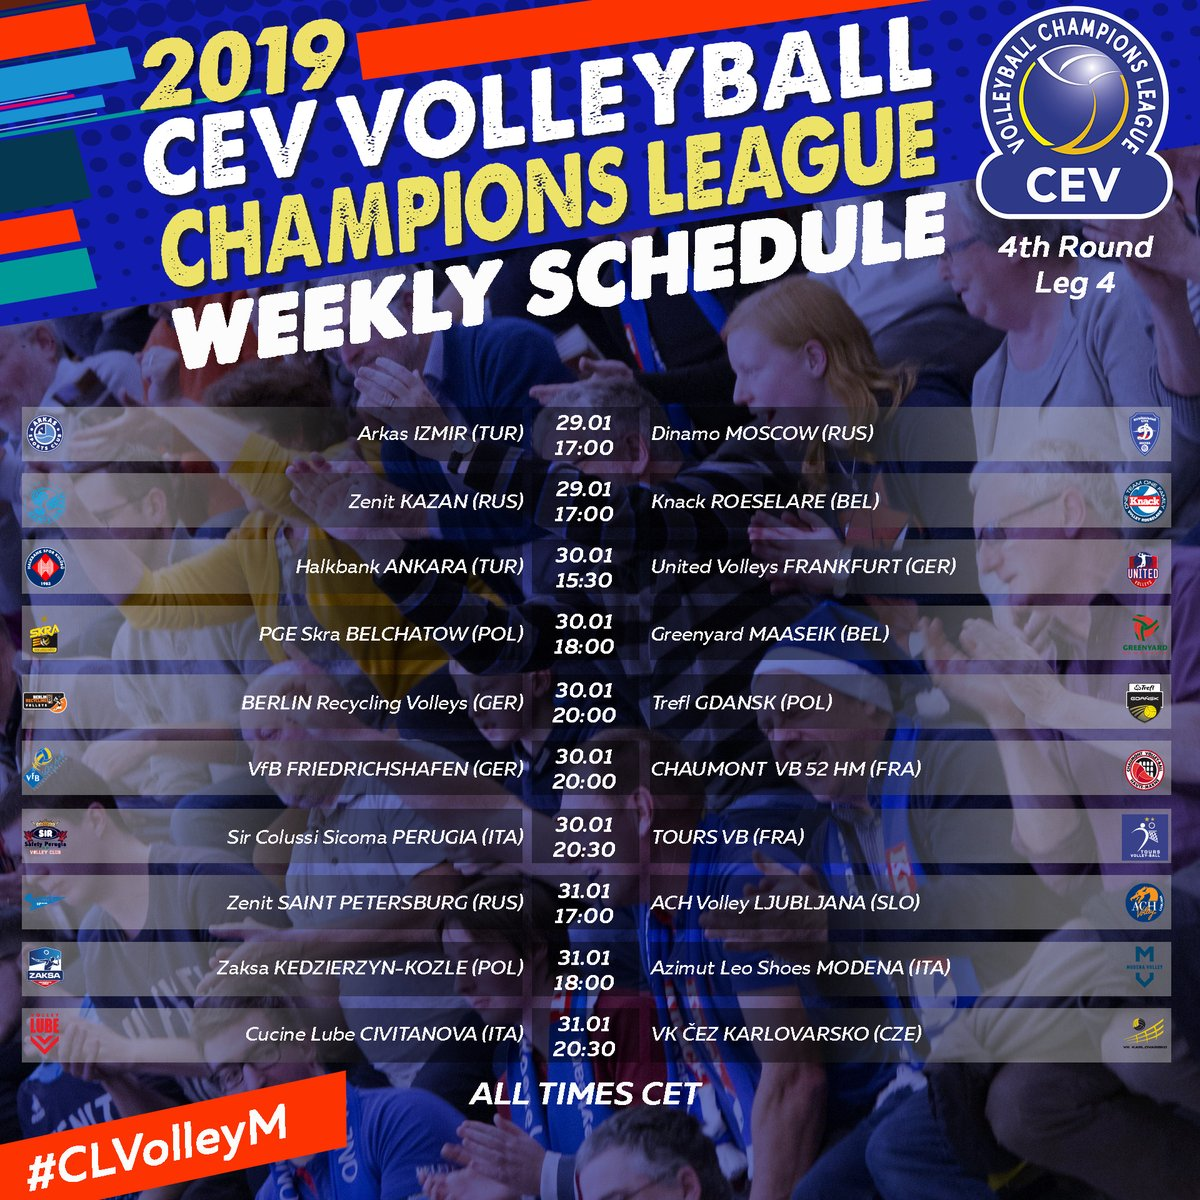 CEVCL_Schedule_Jan29-31.jpg